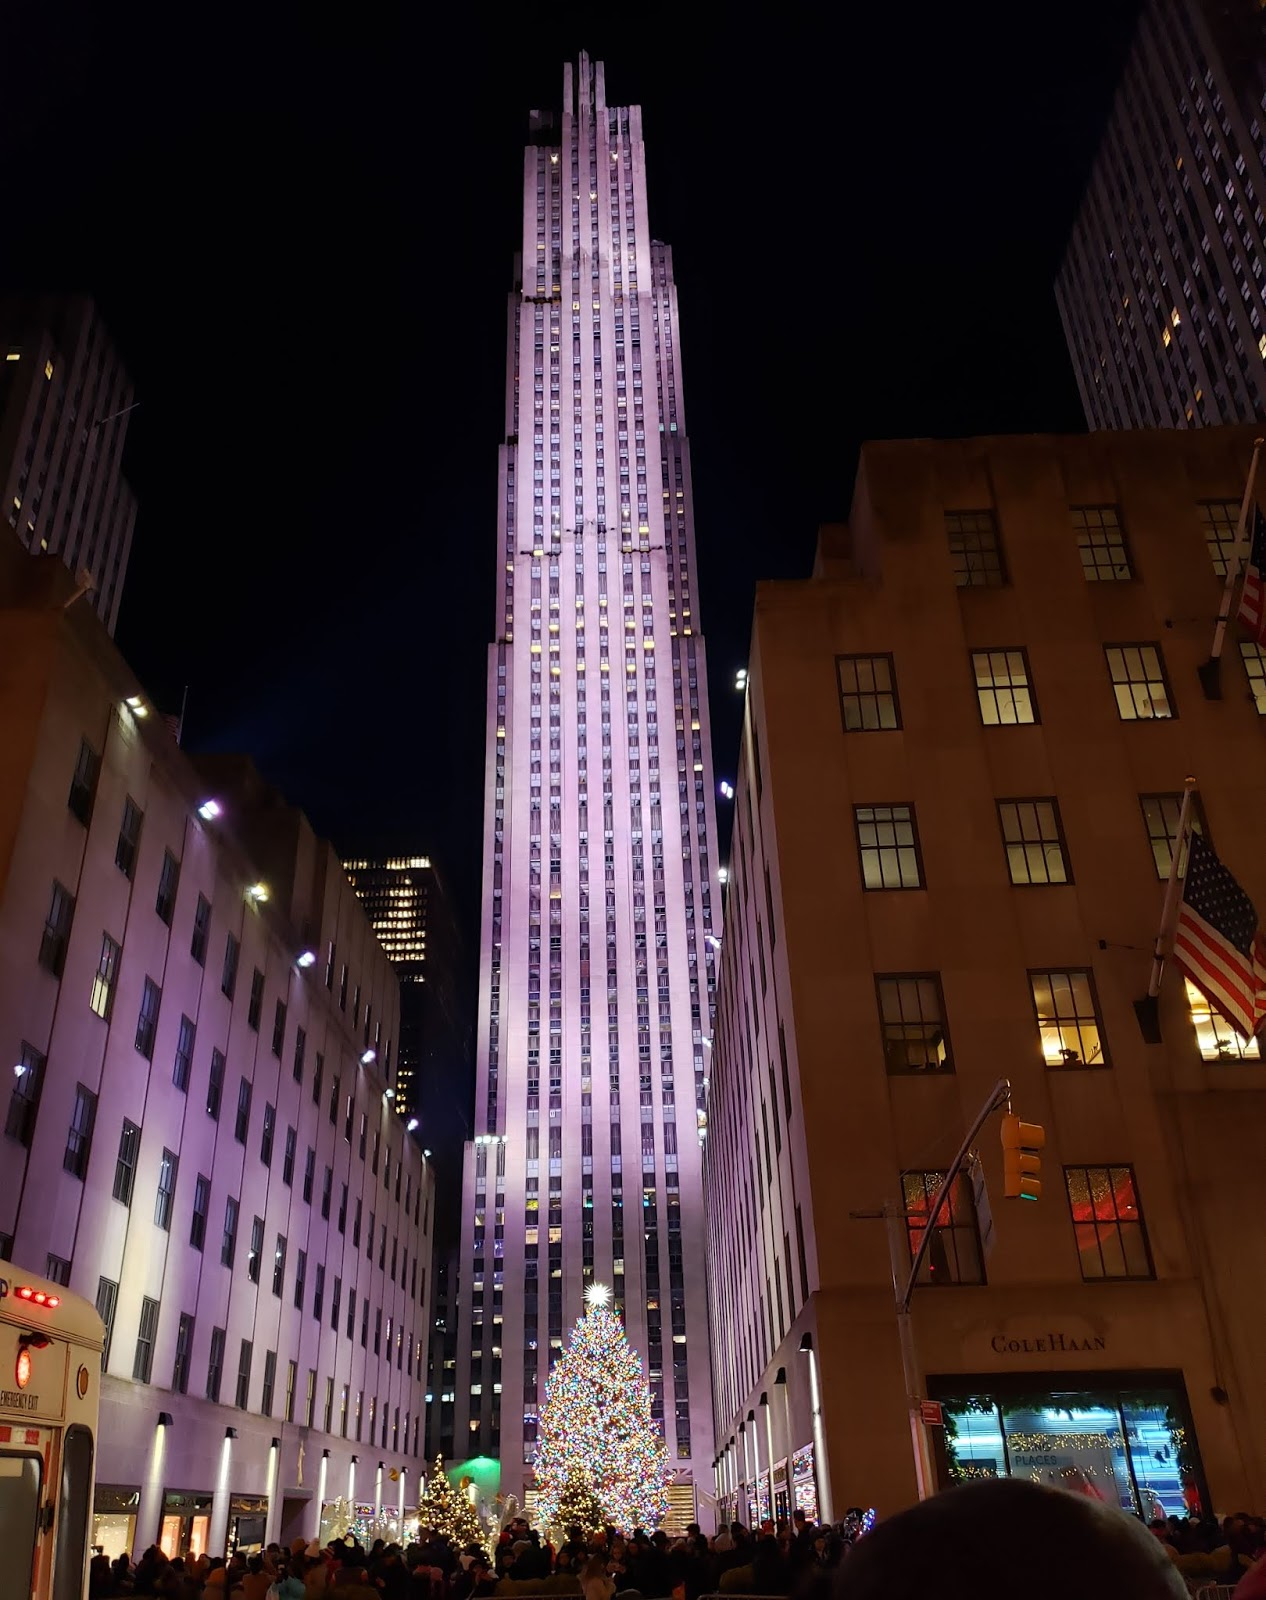 30 Rockefeller Plaza on Christmas